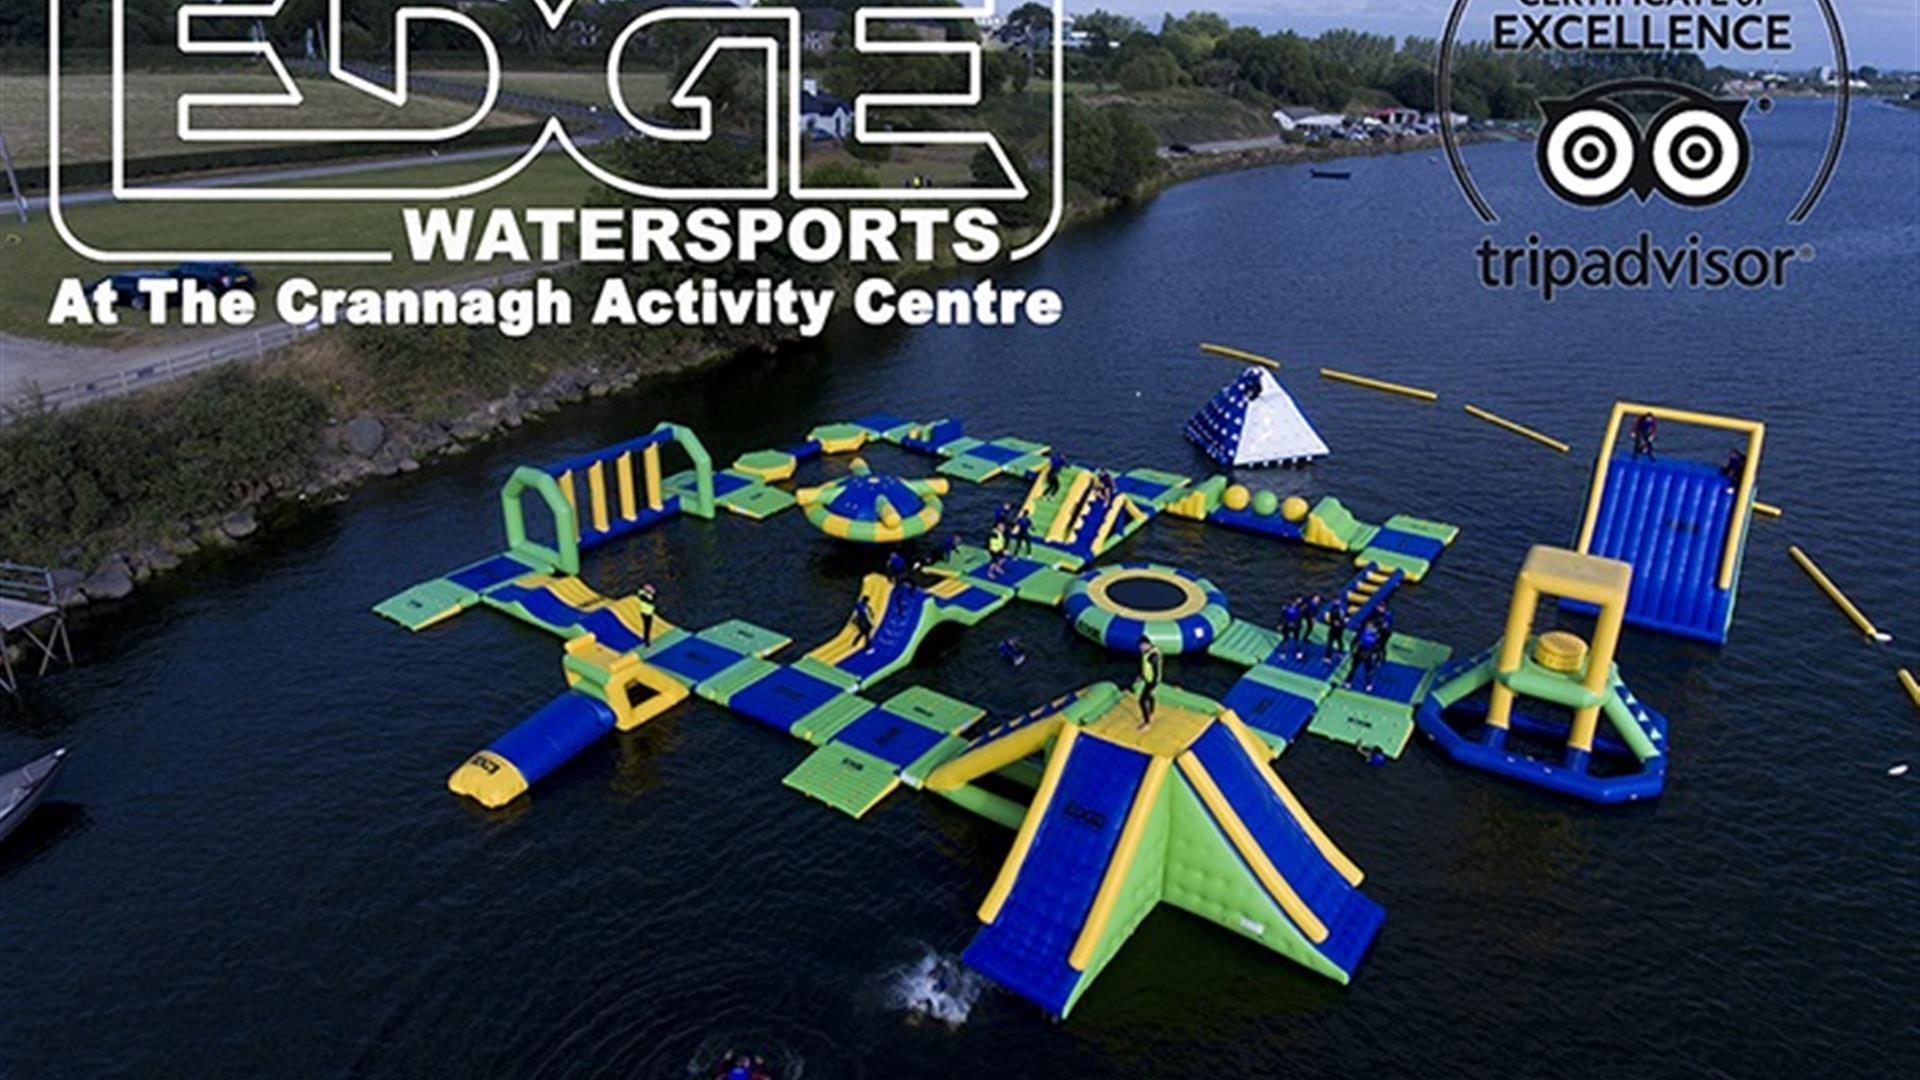 The Edge Watersports at the Crannagh Activity Centre